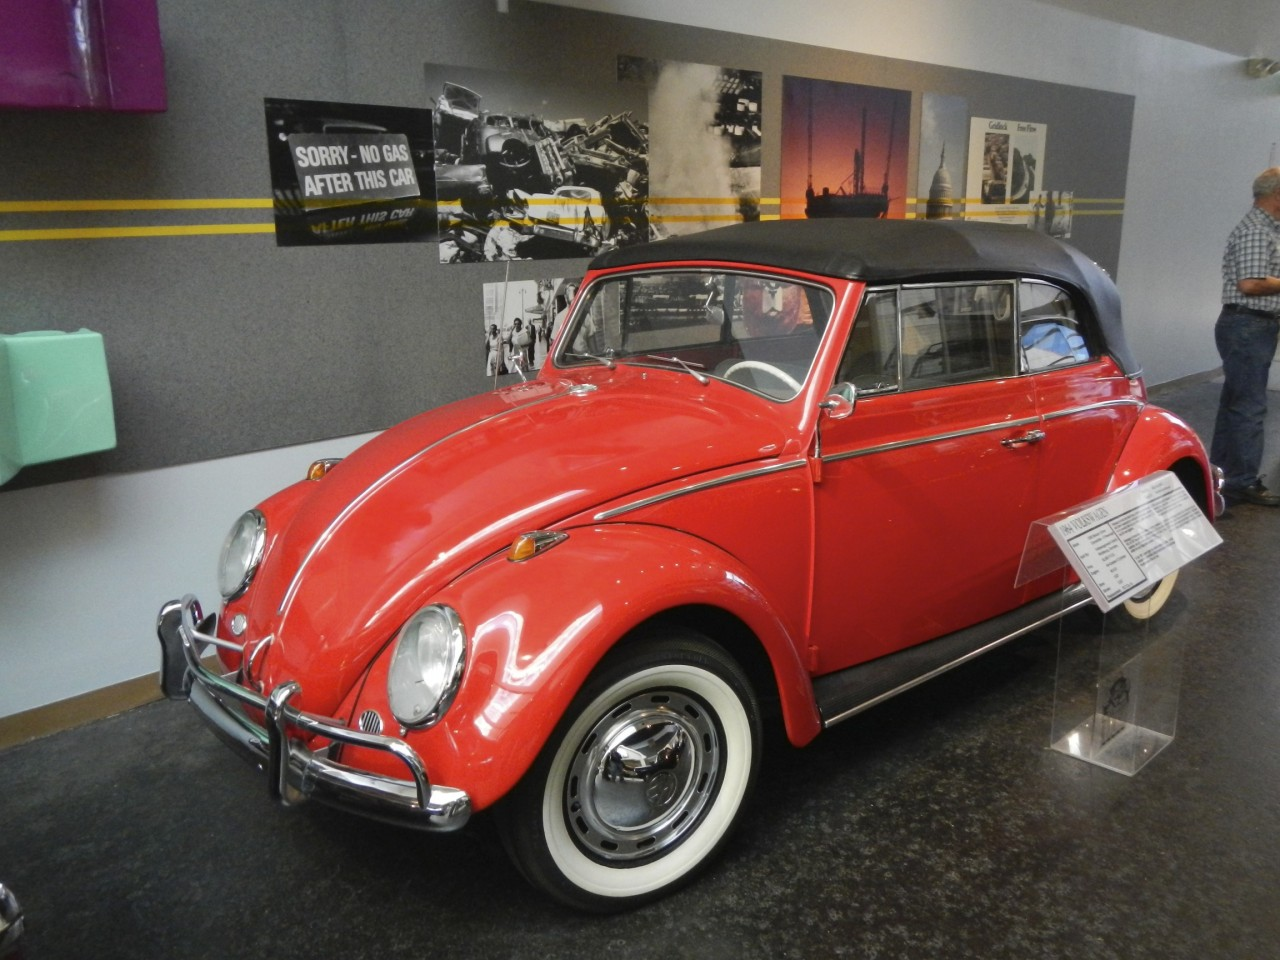 Punch Buggy Volkswagen >> Punch Buggy Red | www.pixshark.com - Images Galleries With A Bite!